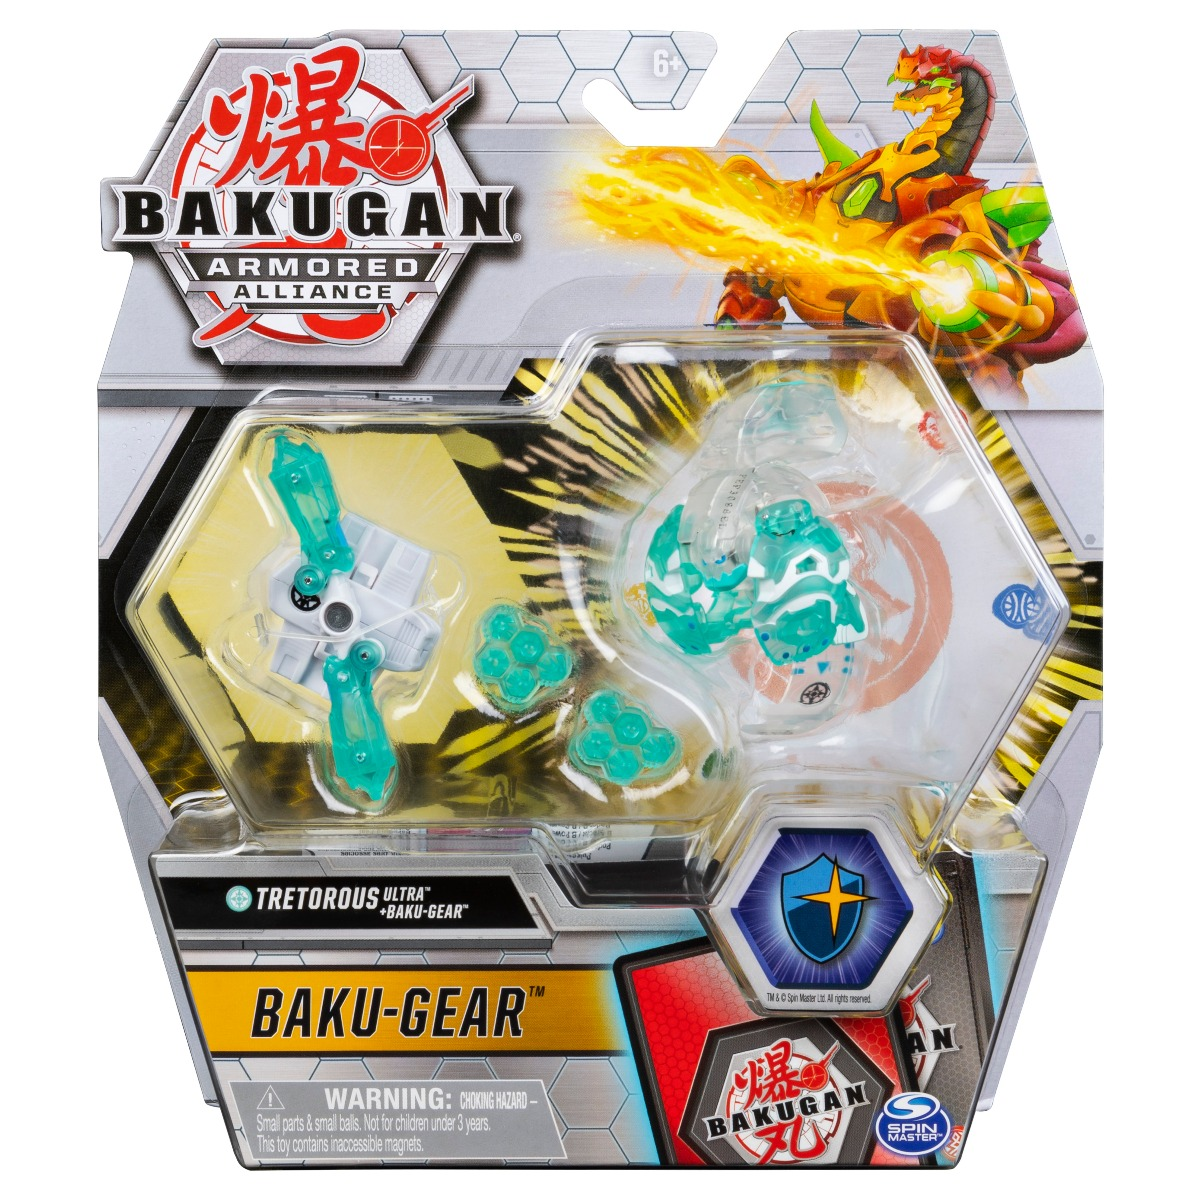 Figurina Bakugan Armored Alliance, Tretorous Ultra, Baku-Gear 20124270